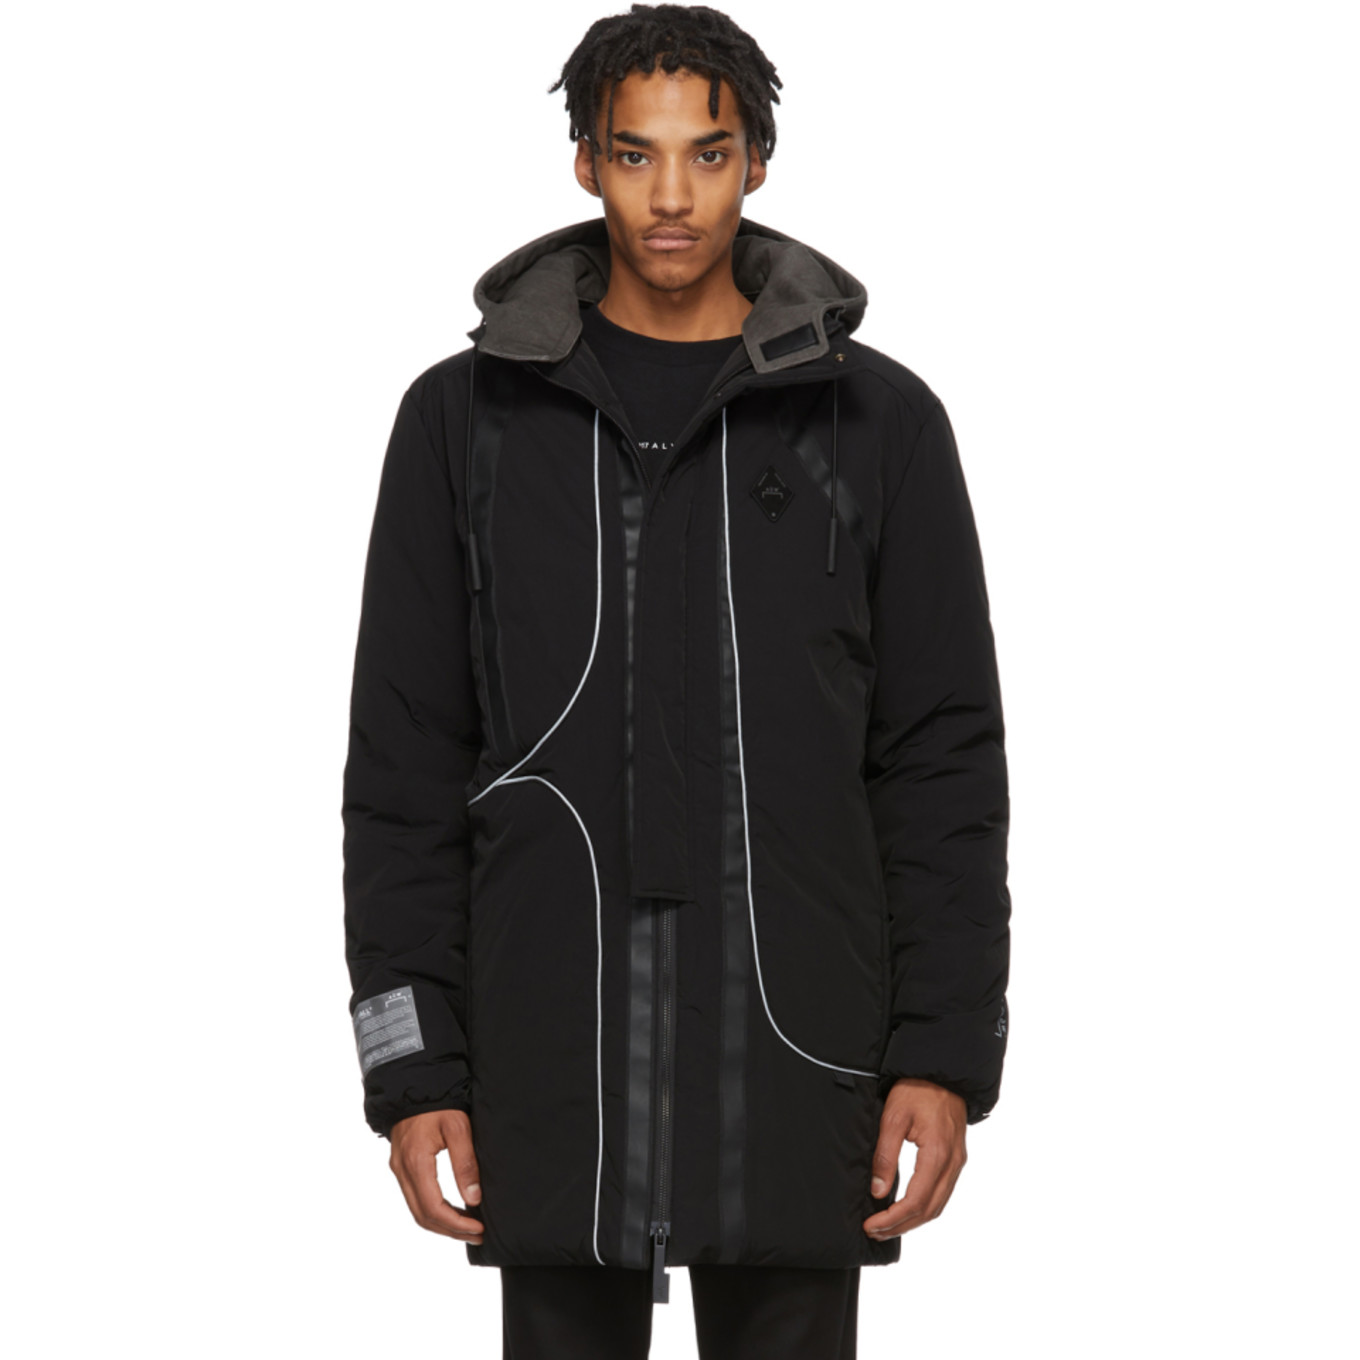 Black Memory Crinkle Puffer Coat by A Cold Wall*